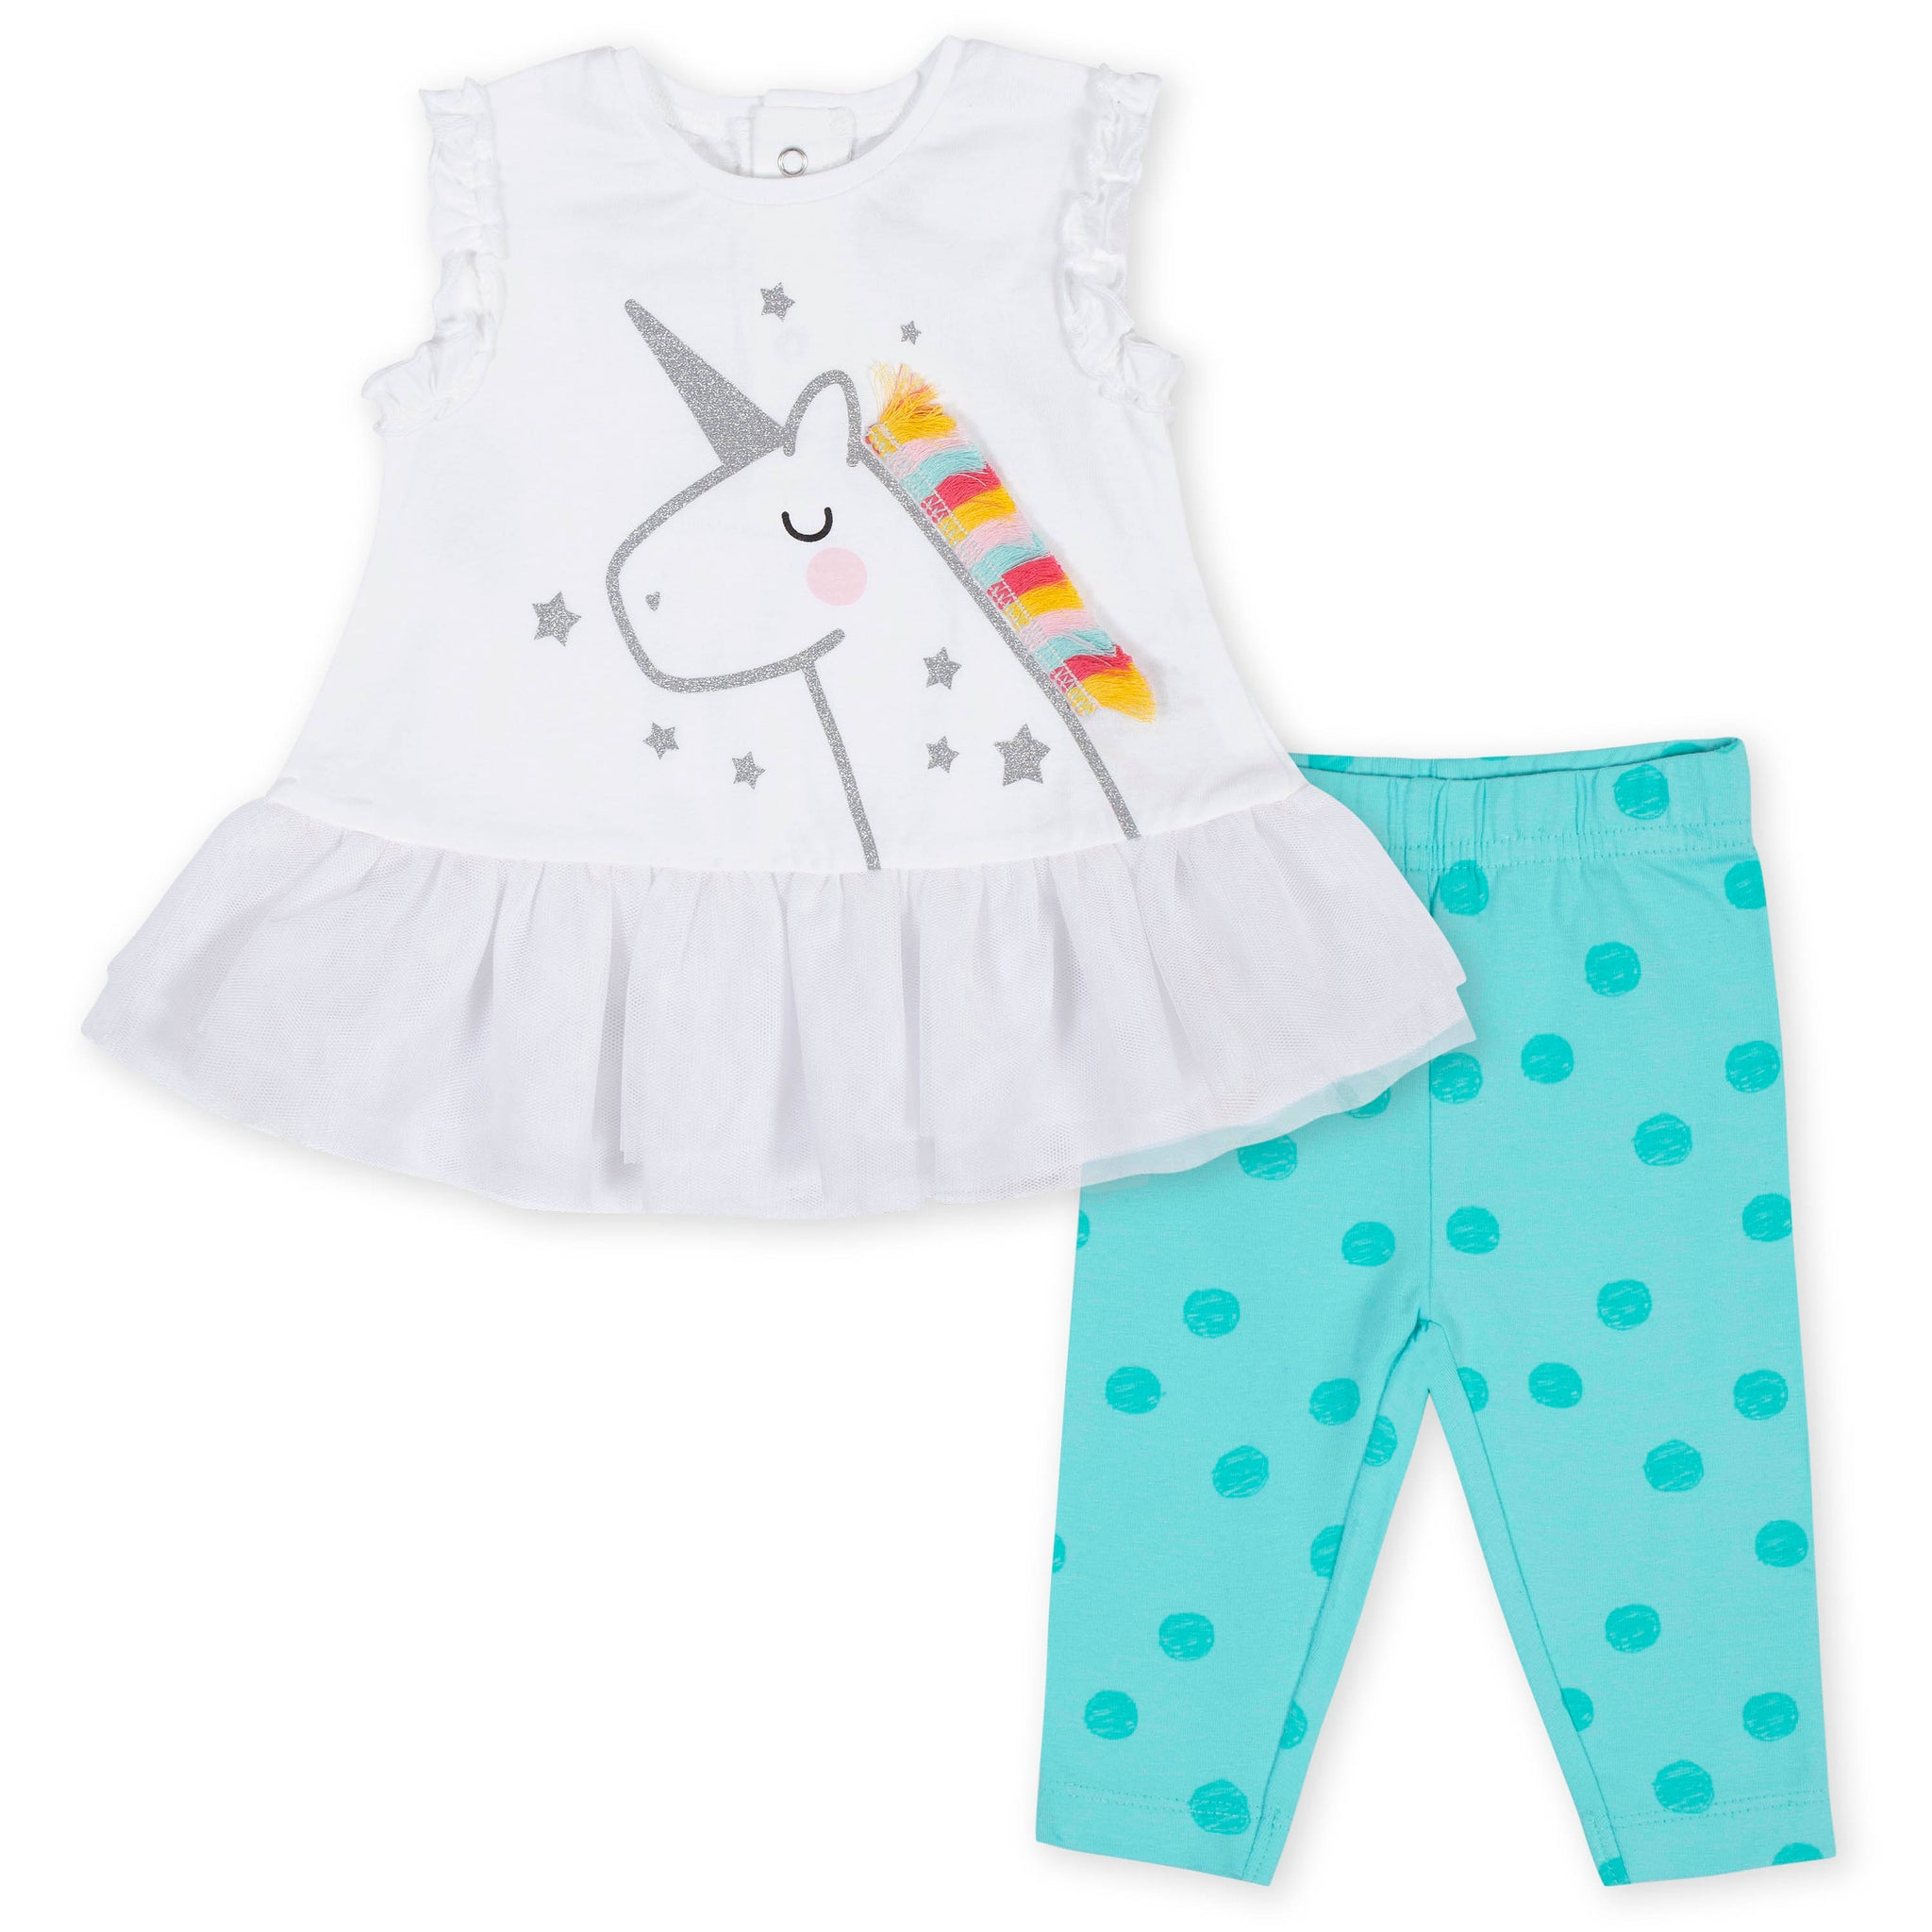 2-Piece Baby Girls Unicorn Tunic Set-Gerber Childrenswear Wholesale